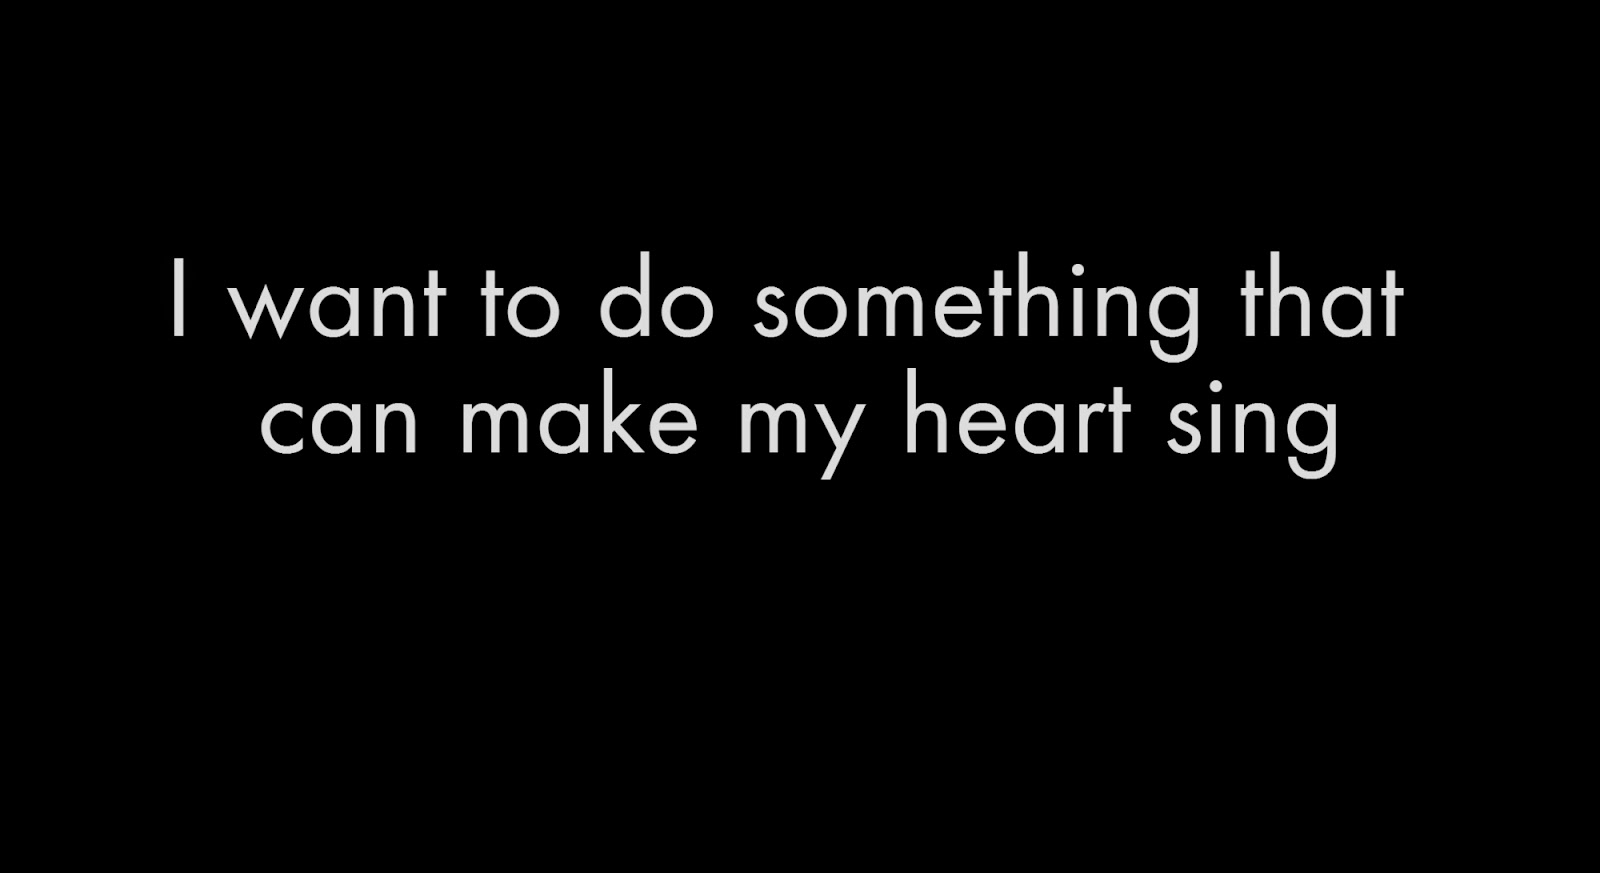 I want to do something that can make my heart sing